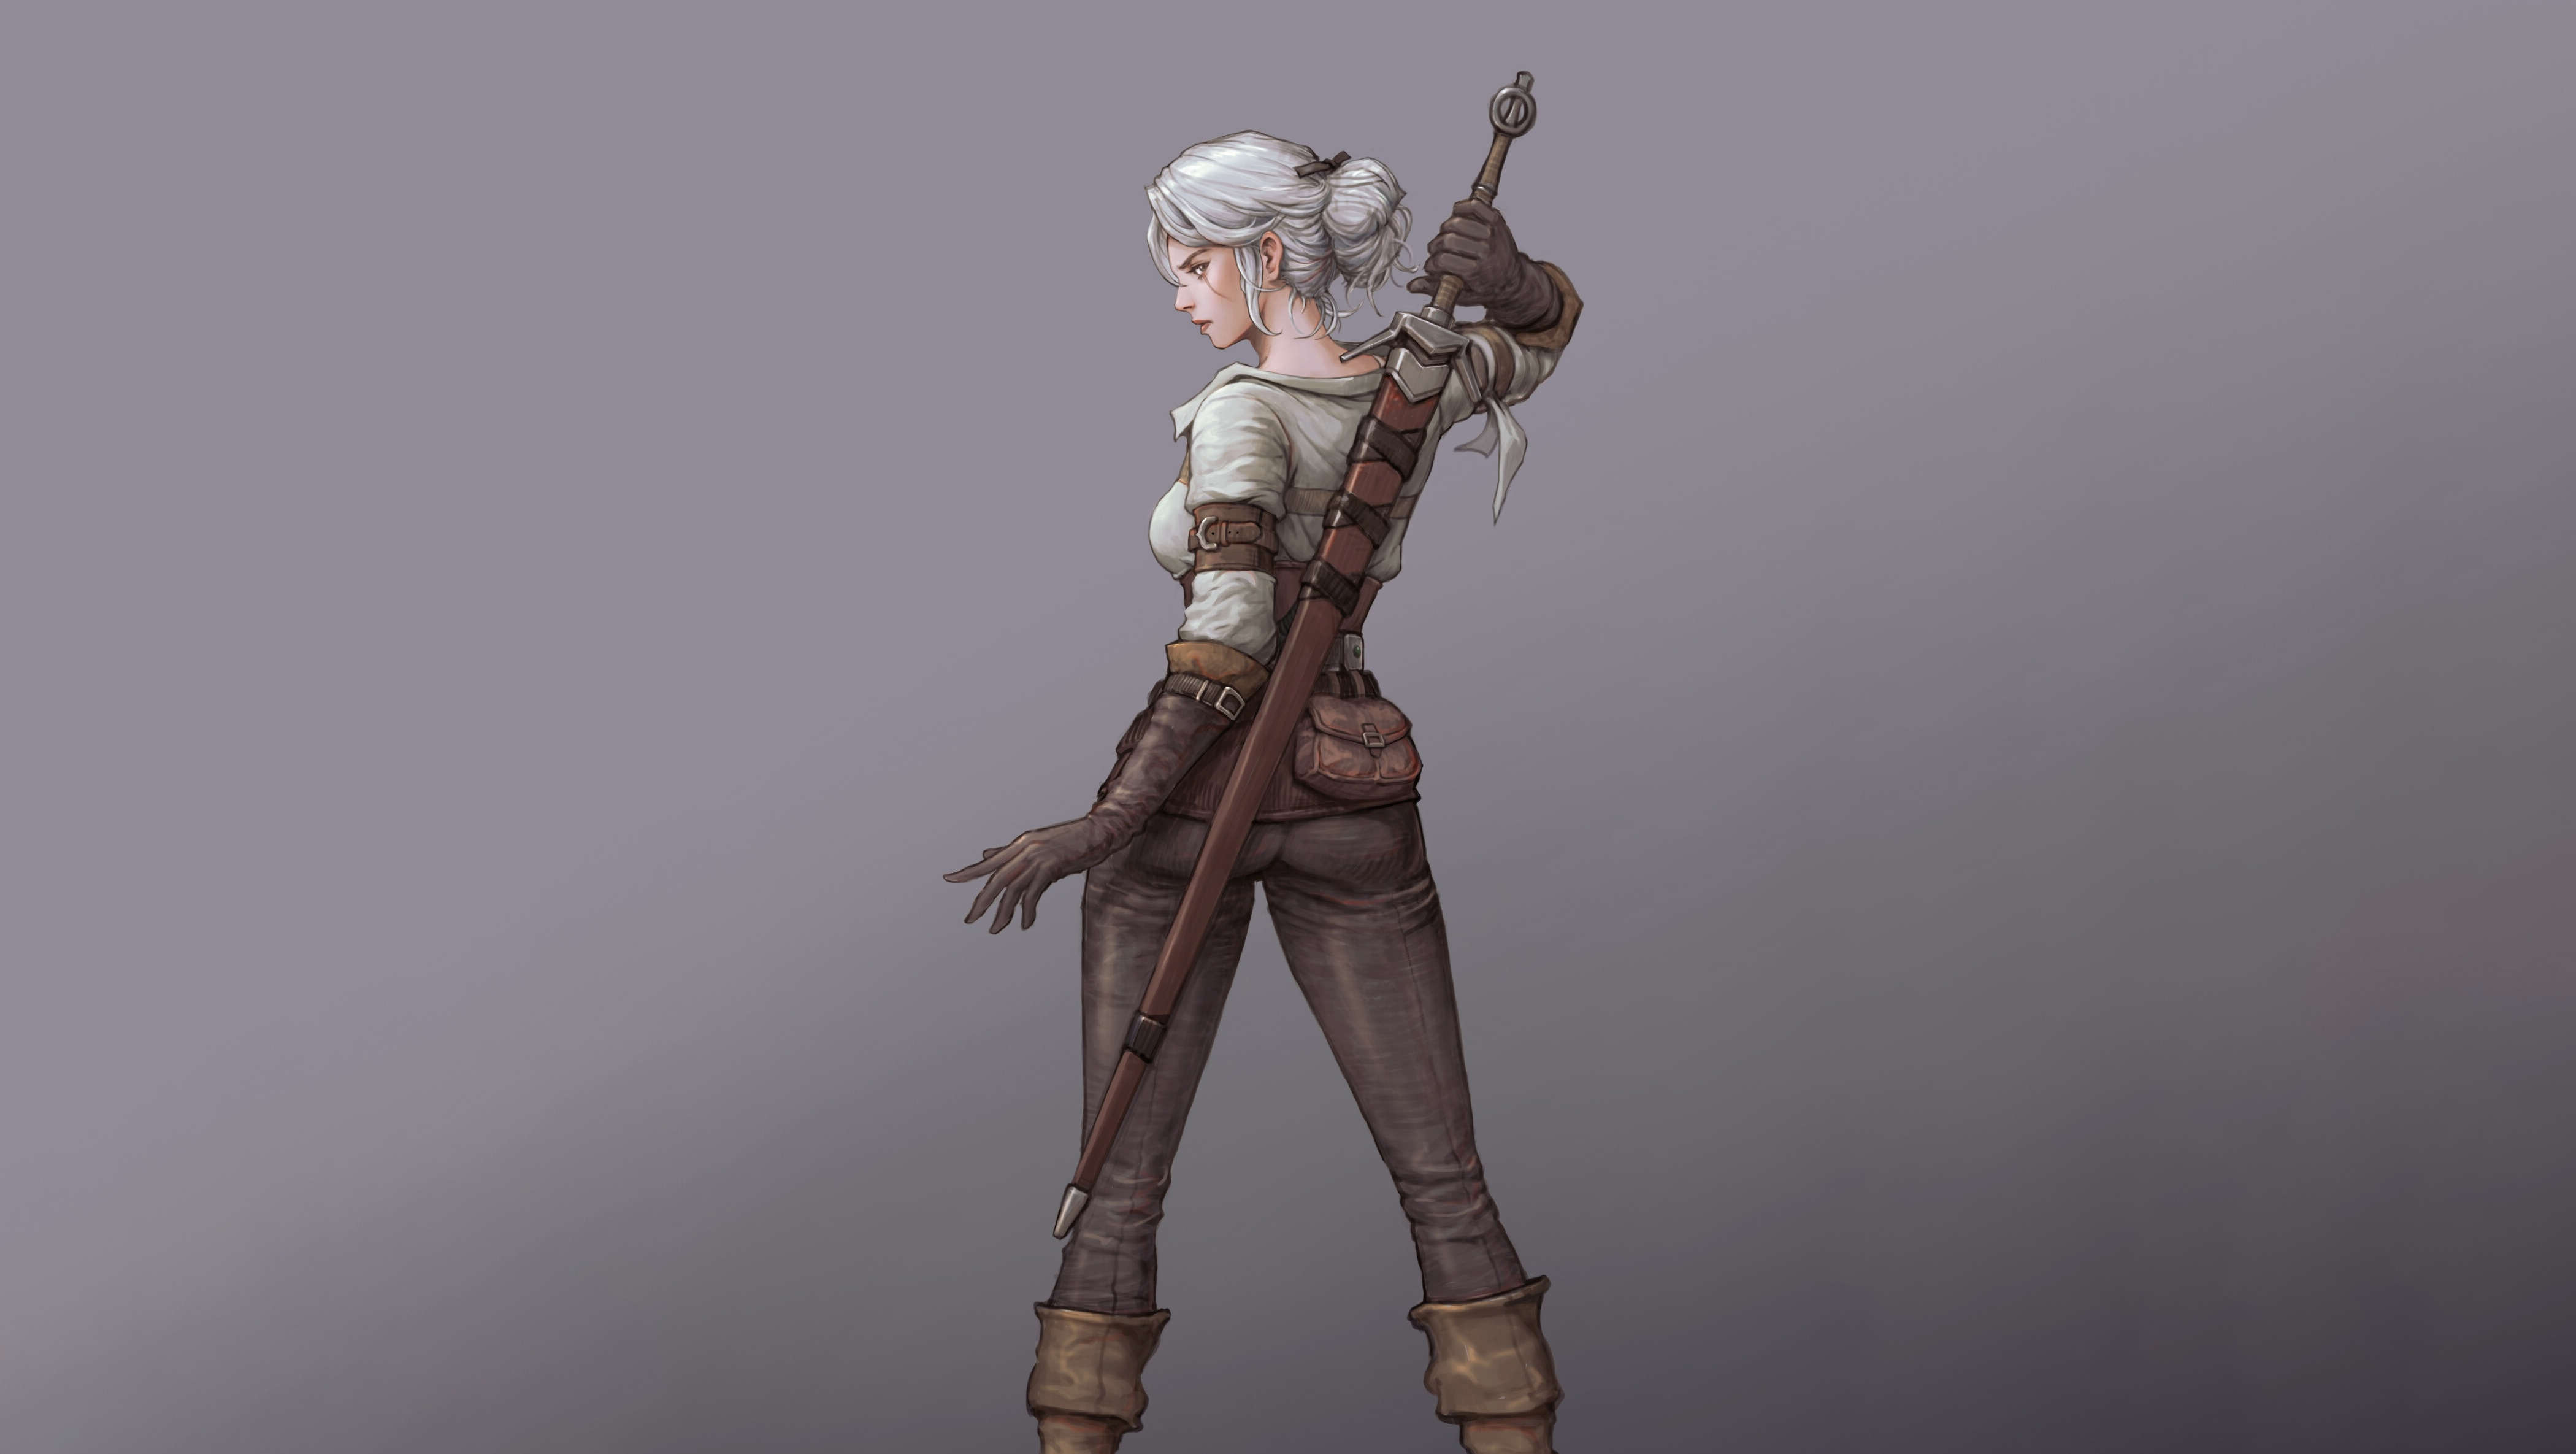 800x1280 Ciri In The Witcher Nexus 7 Samsung Galaxy Tab 10 Note